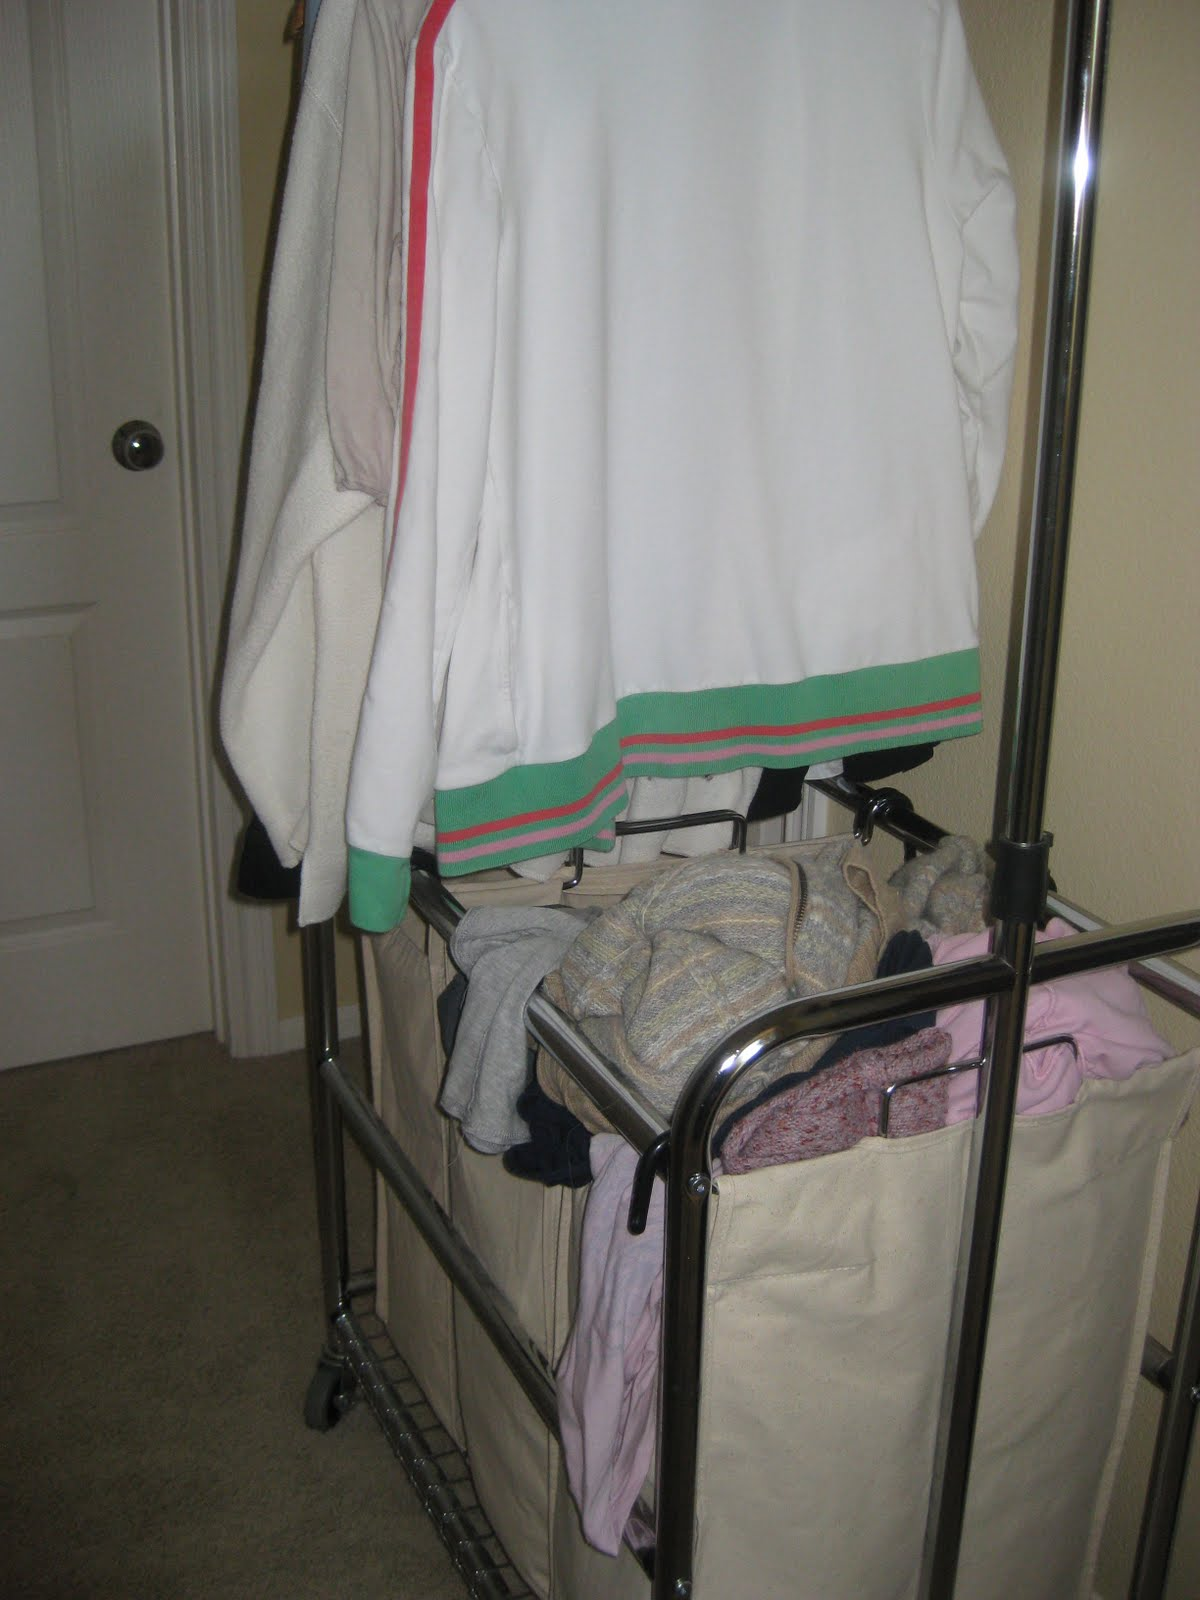 our 10 things airing my dirty laundry